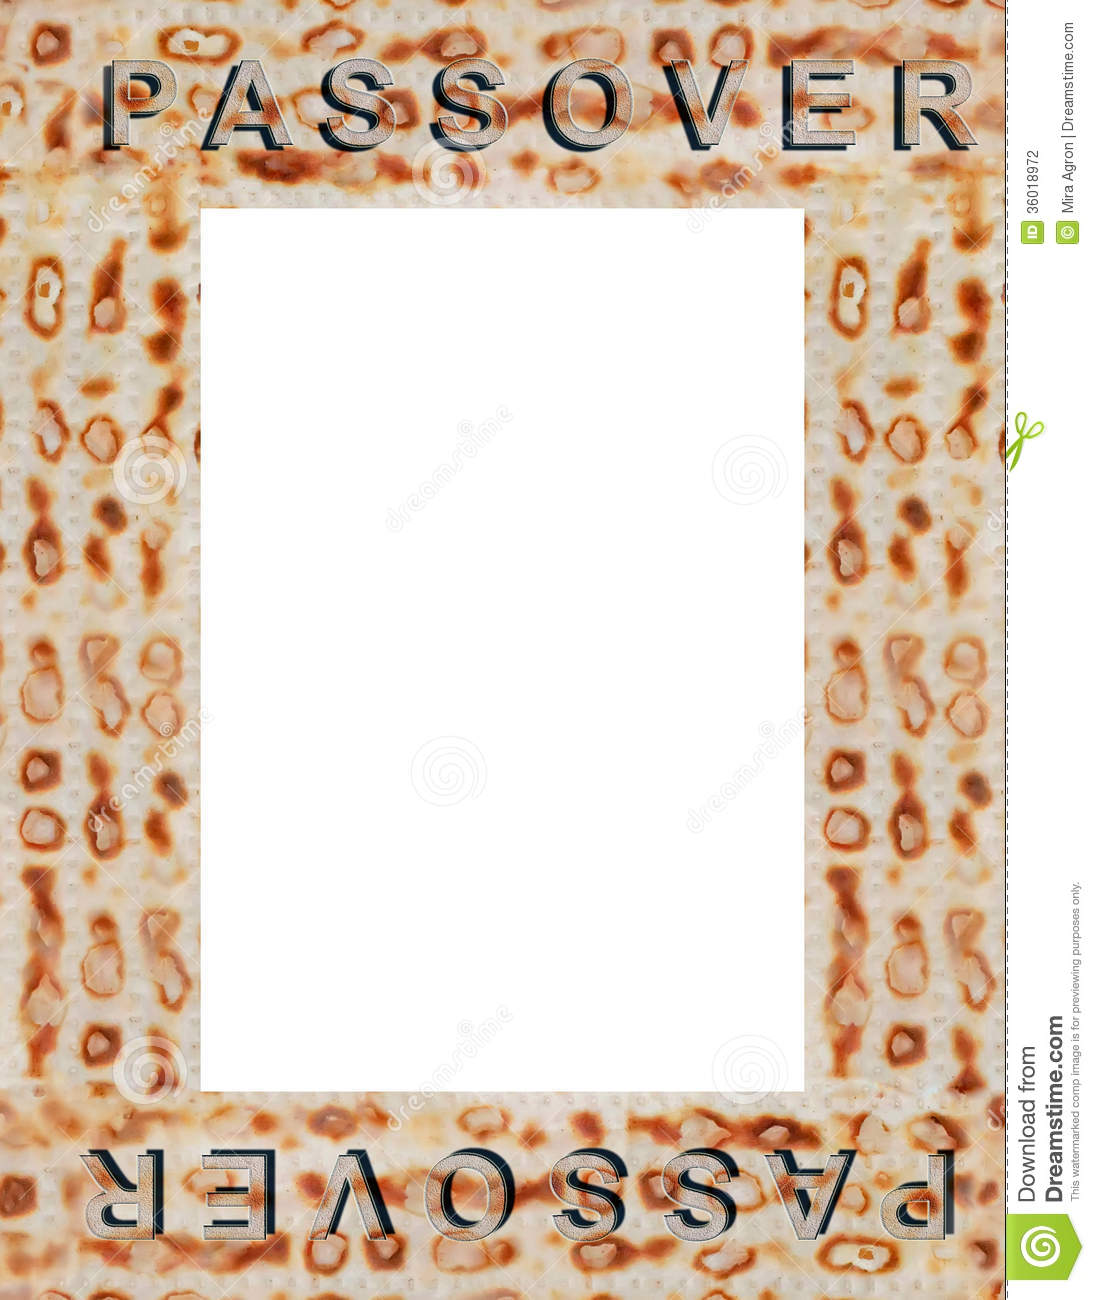 Passover Frame Stock Photo Image Of Matza Border Matzo 36018972